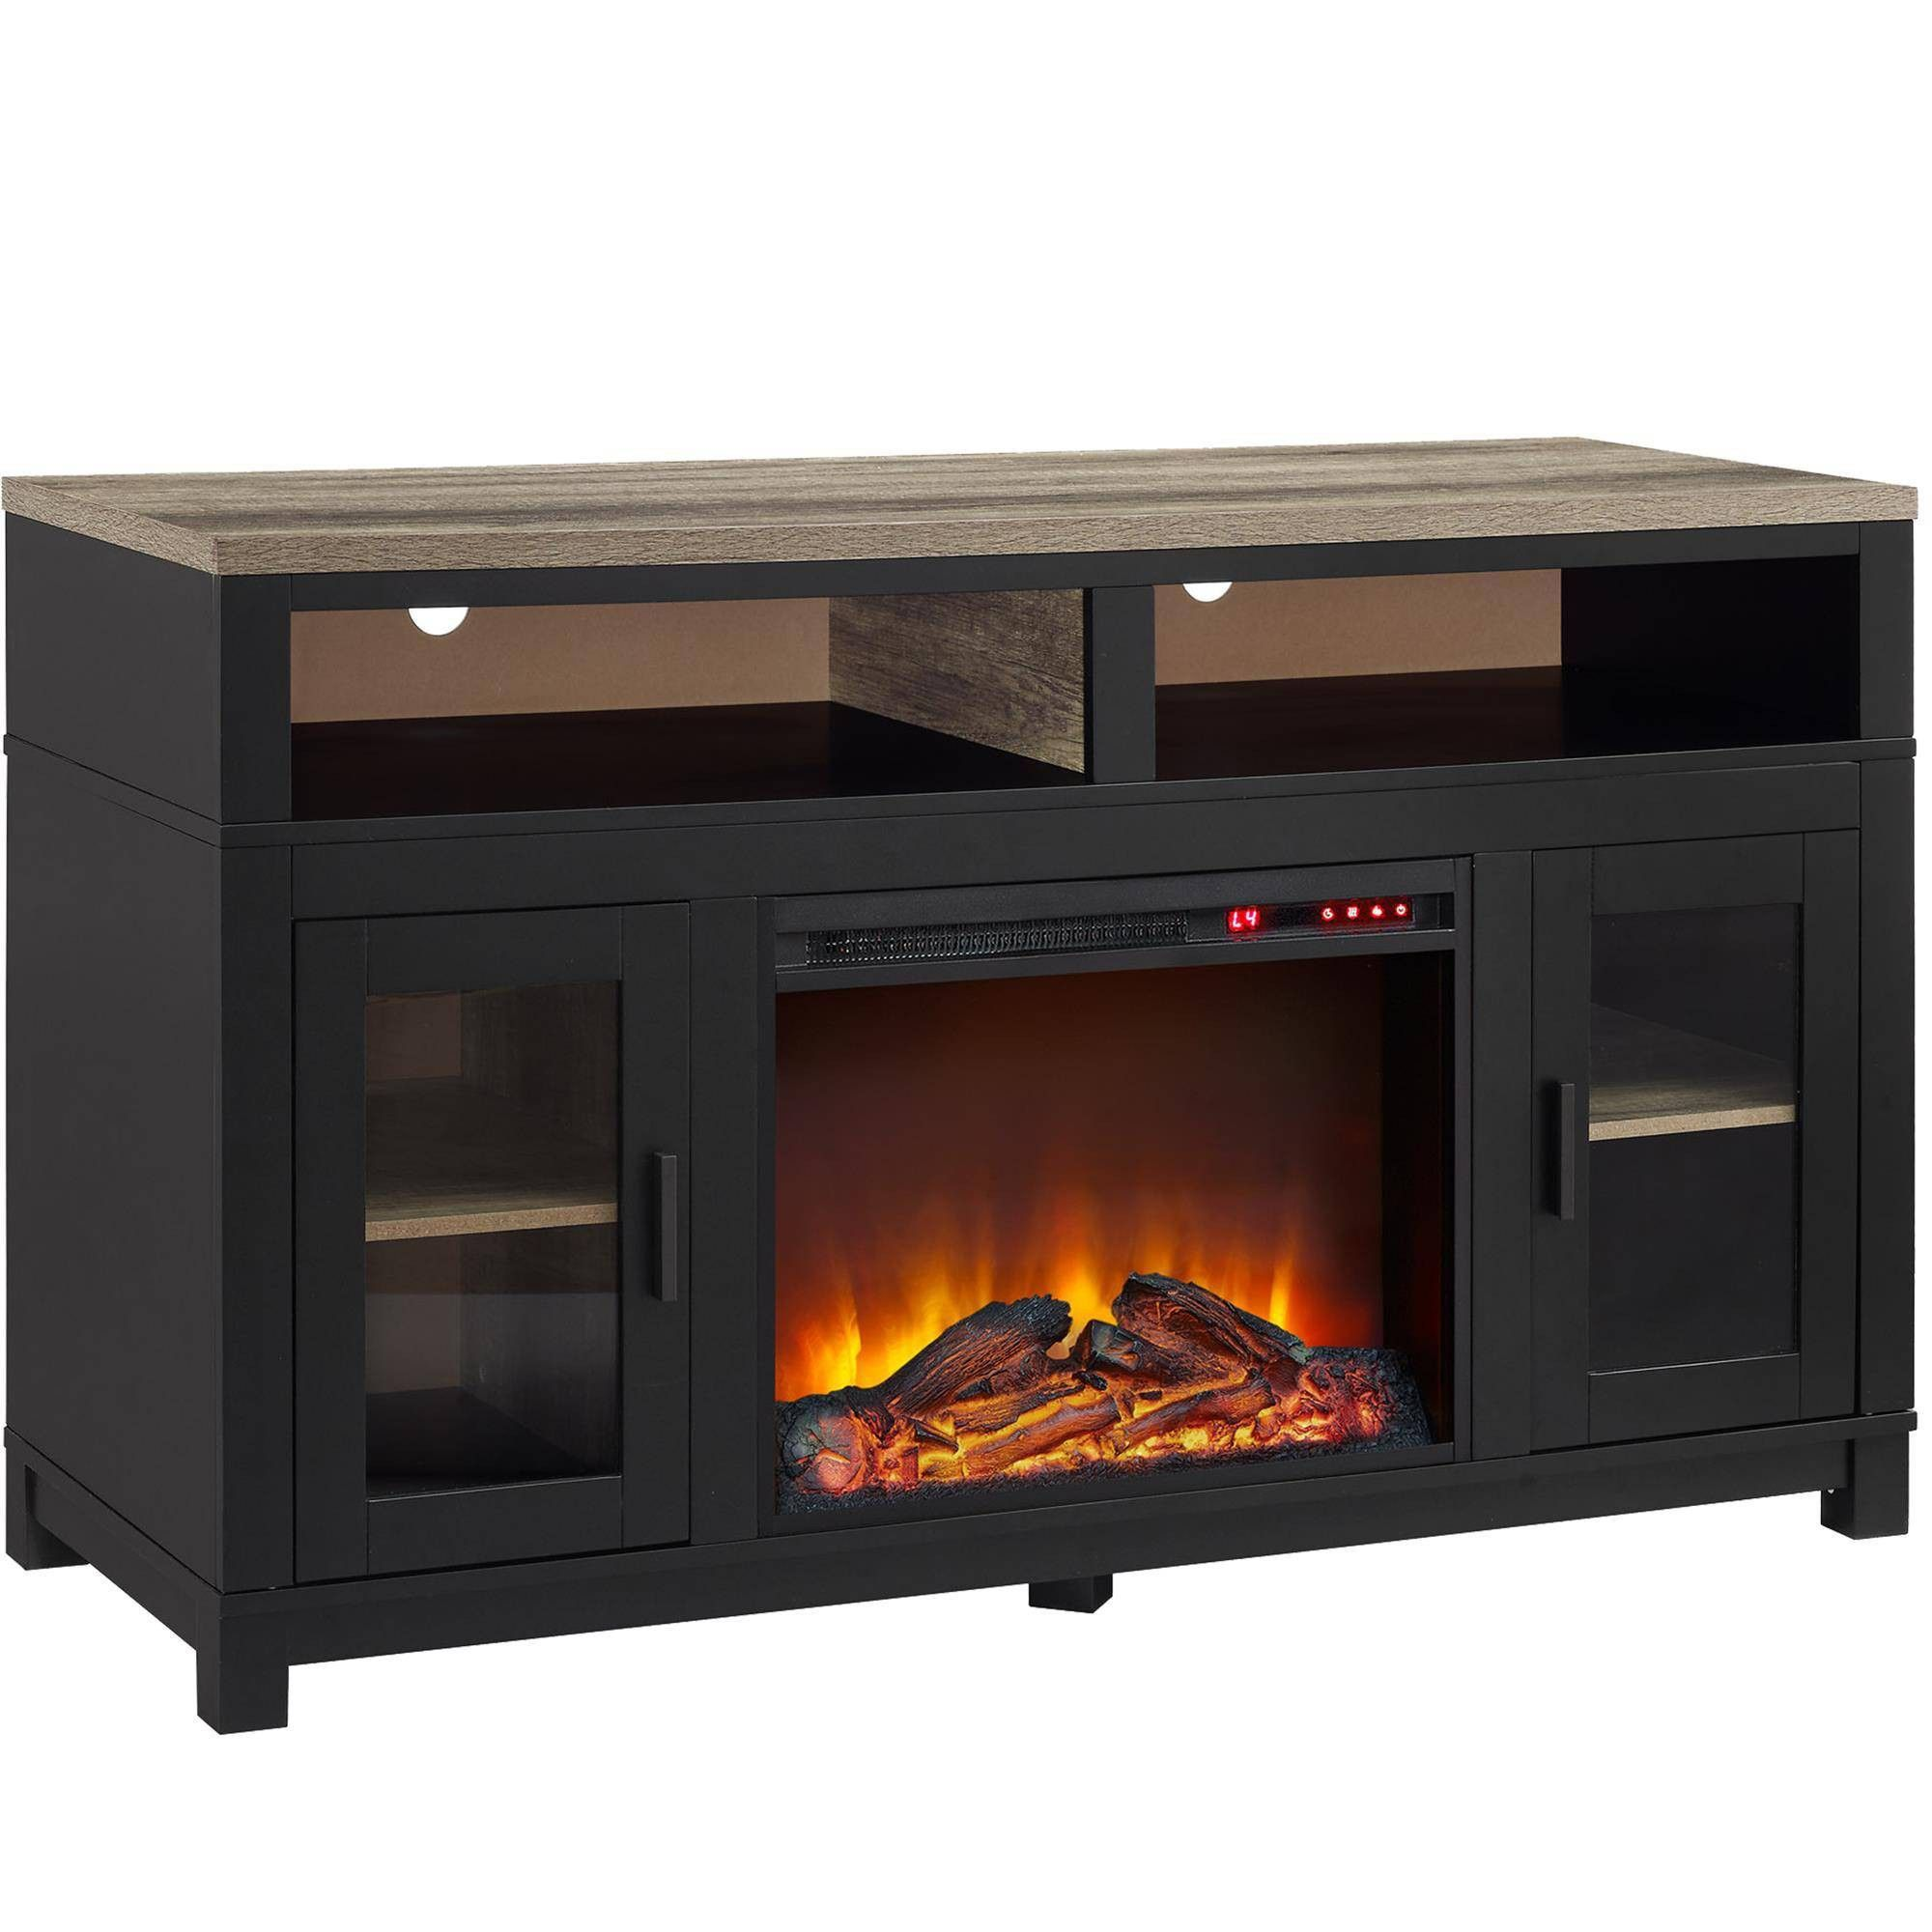 Paramount Electric Fireplace TV Stand for TVs up to 60